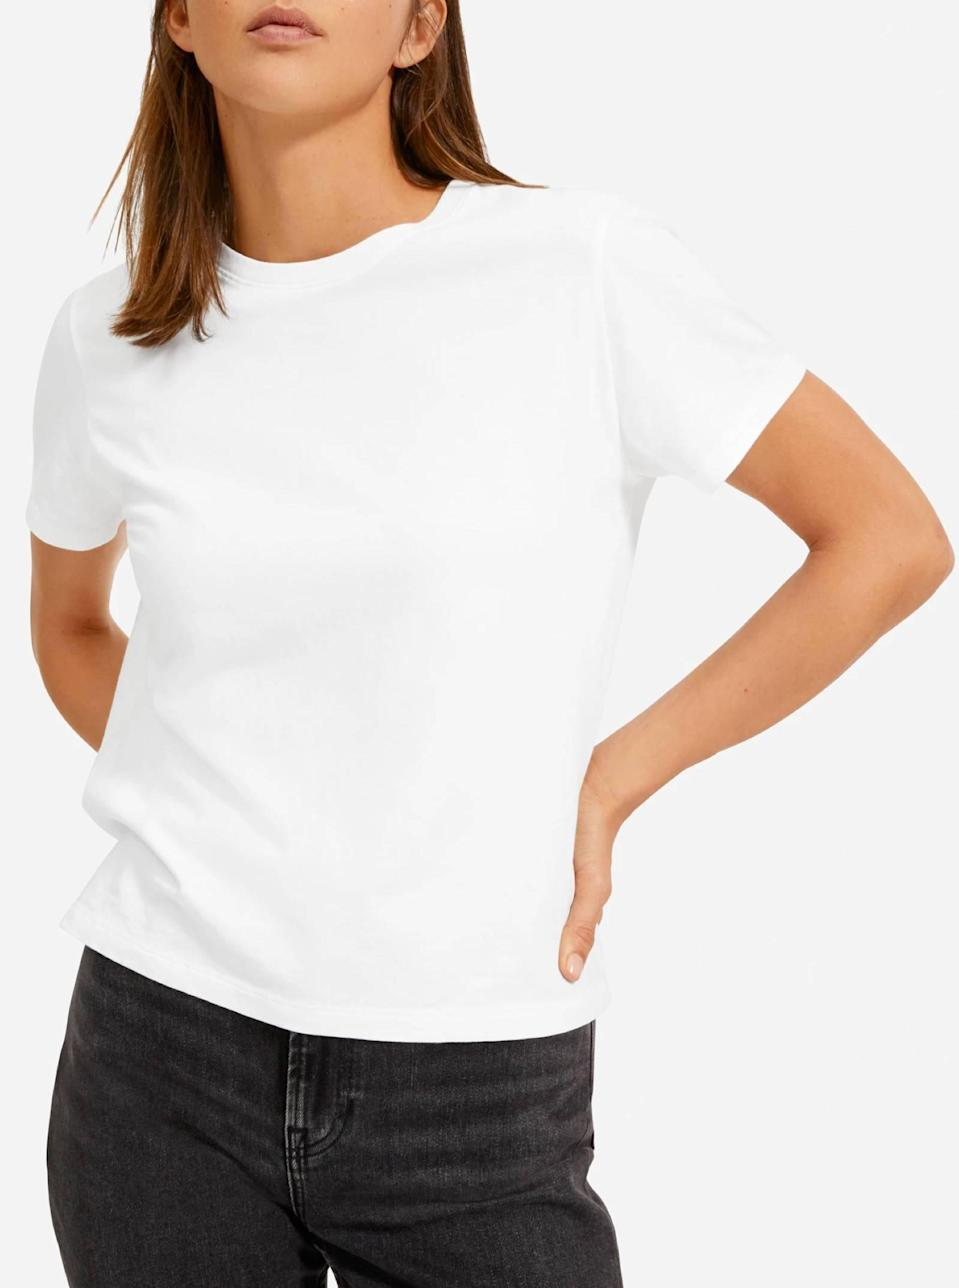 """$18, Everlane. <a href=""""https://www.everlane.com/products/womens-organic-cotton-box-cut-tee-white"""" rel=""""nofollow noopener"""" target=""""_blank"""" data-ylk=""""slk:Get it now!"""" class=""""link rapid-noclick-resp"""">Get it now!</a>"""